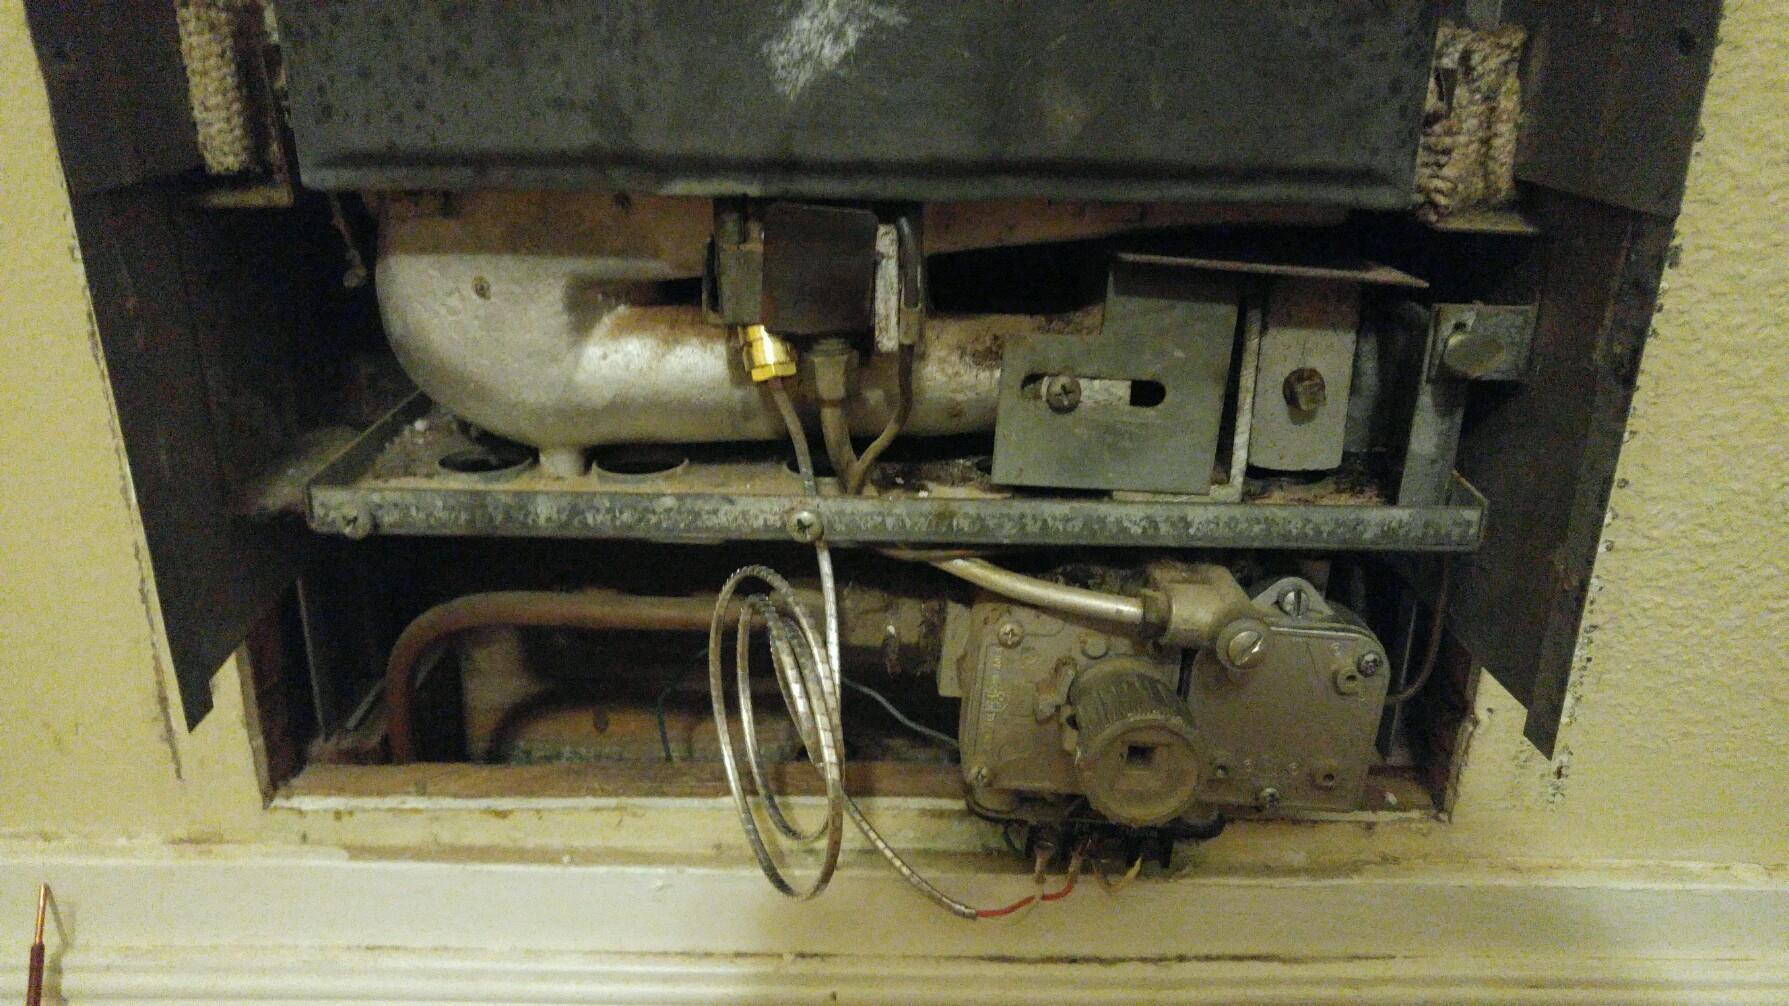 Old Gas Wall Heater Pilot Light Trouble Heating Help